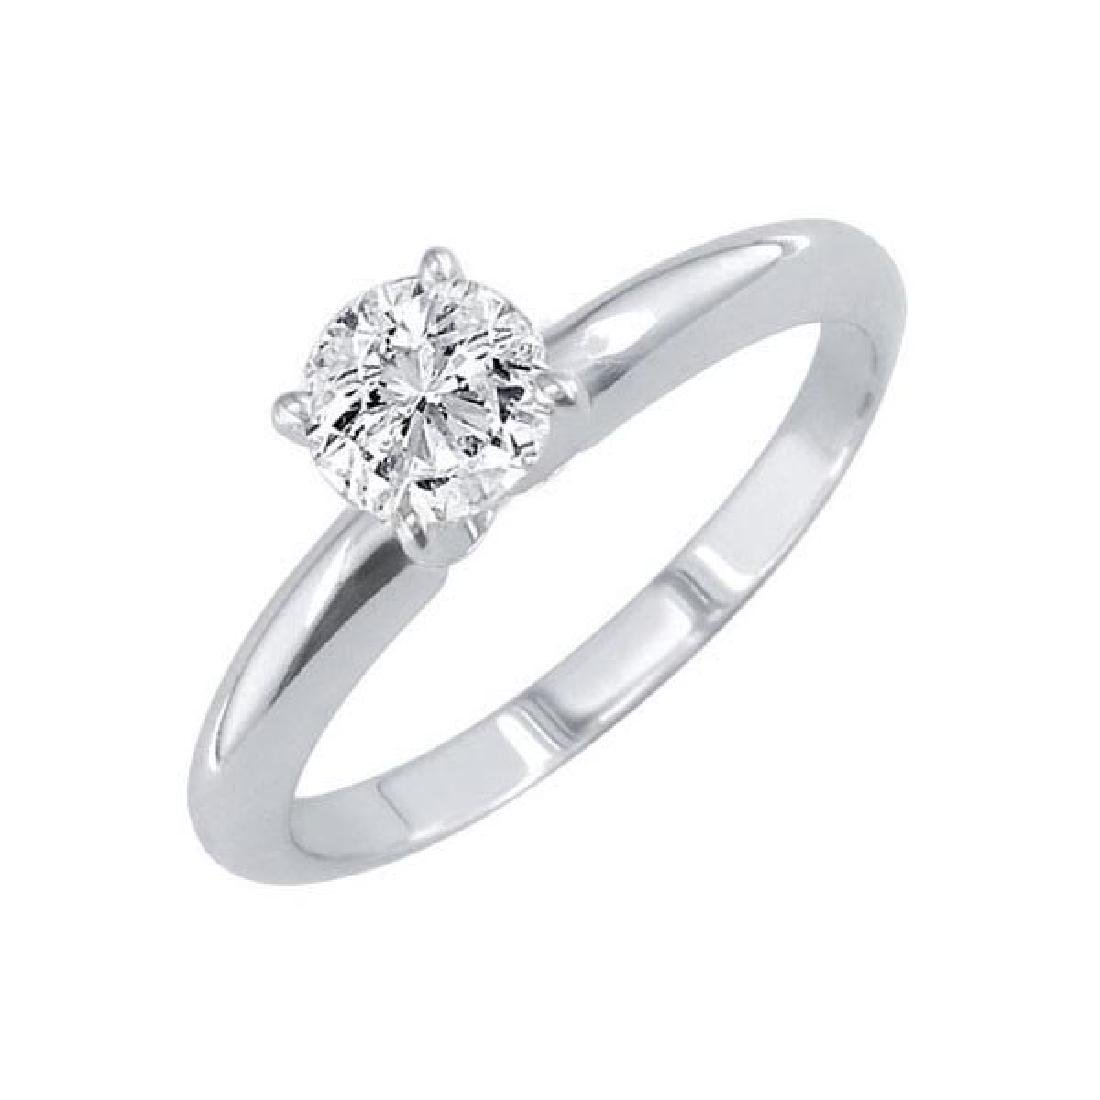 Certified 1.17 CTW Round Diamond Solitaire 14k Ring D/S